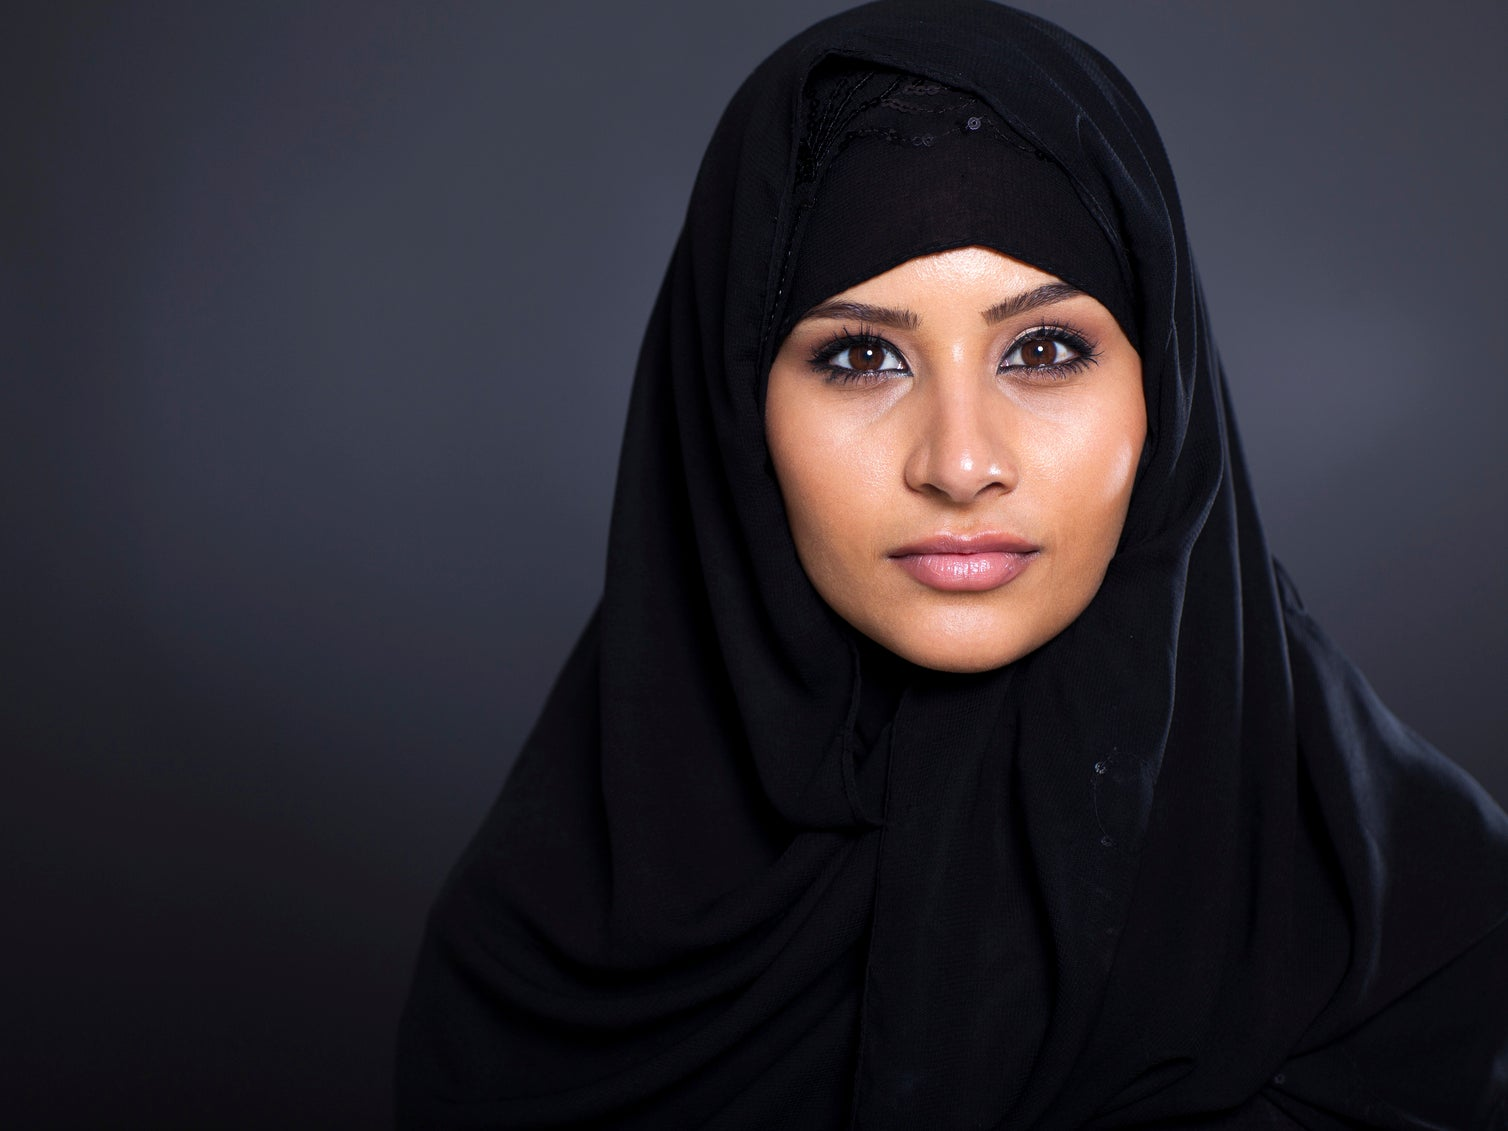 west leyden muslim women dating site Meet port leyden singles online & chat in the forums dhu is a 100% free dating  site to find personals & casual encounters in port leyden tracey poore is 41  years.